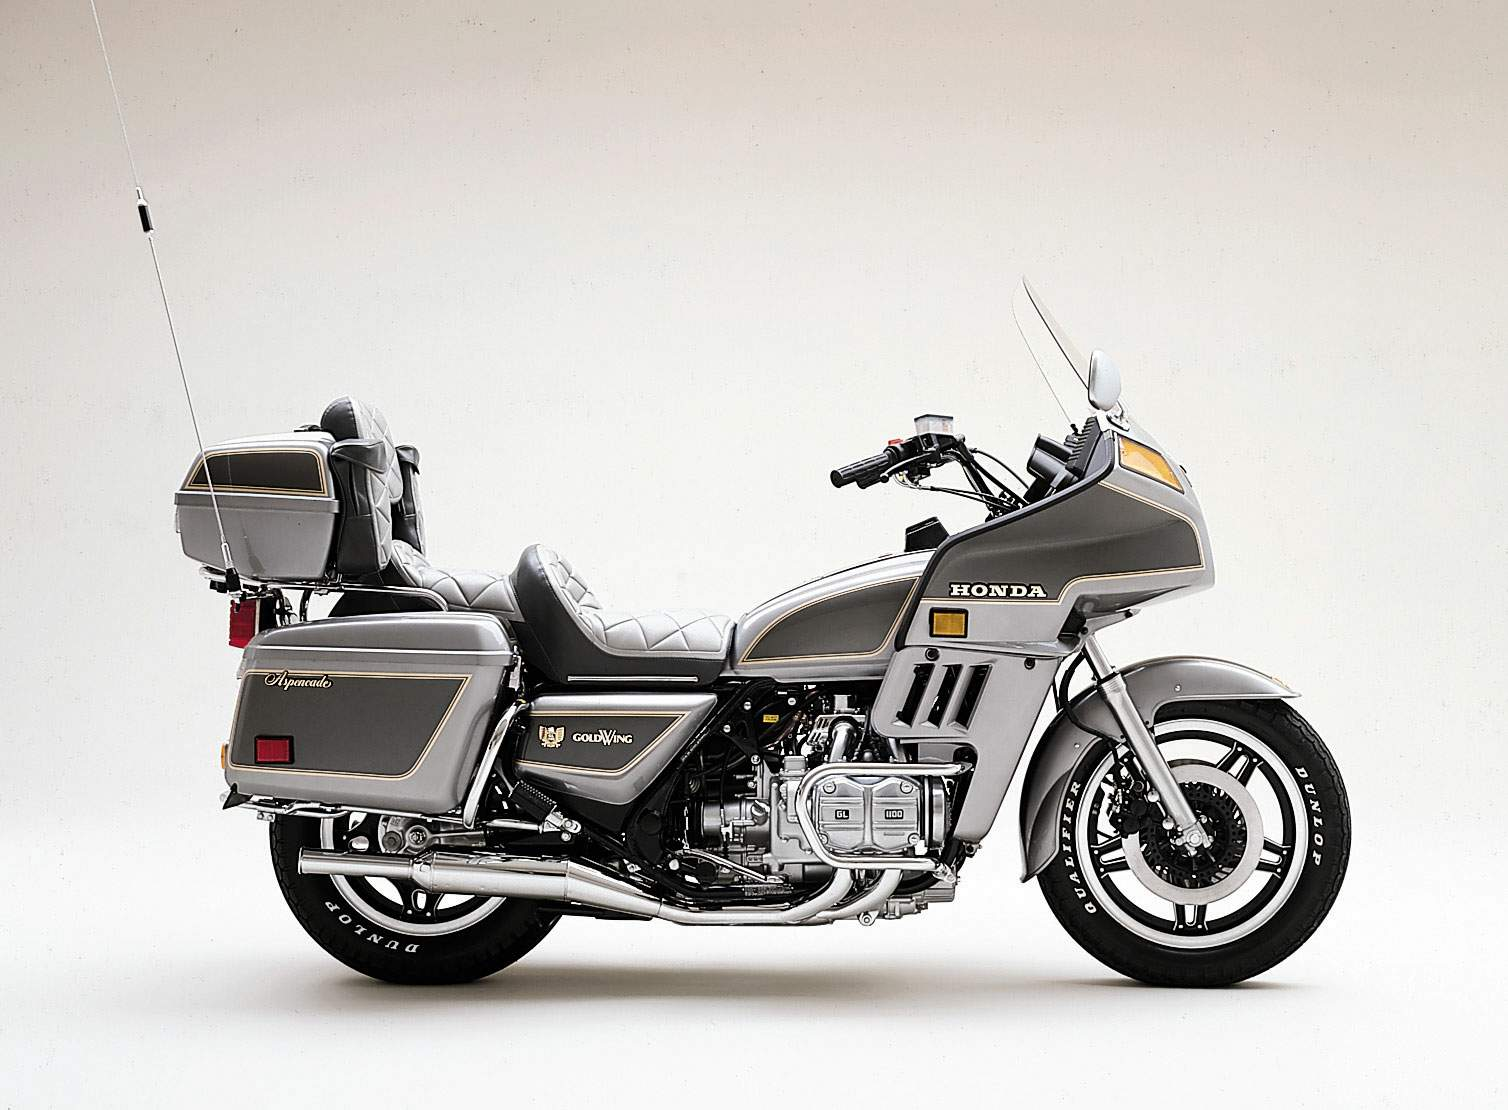 Honda GL 1100 Gold Wing 1982 images #81223